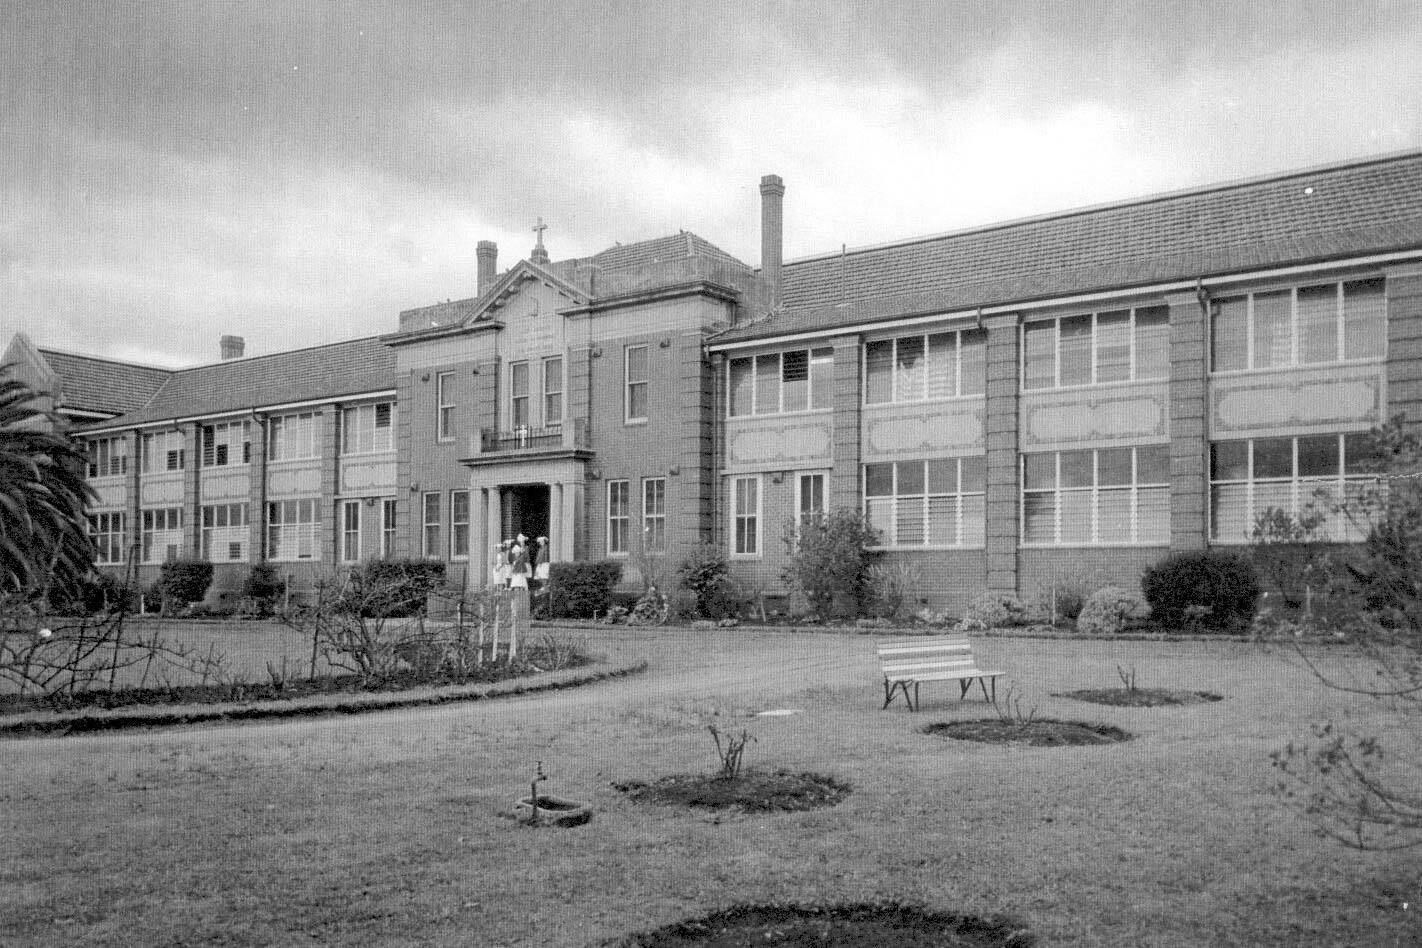 St Joseph's Babies Home In Broadmeadows In The 1960s